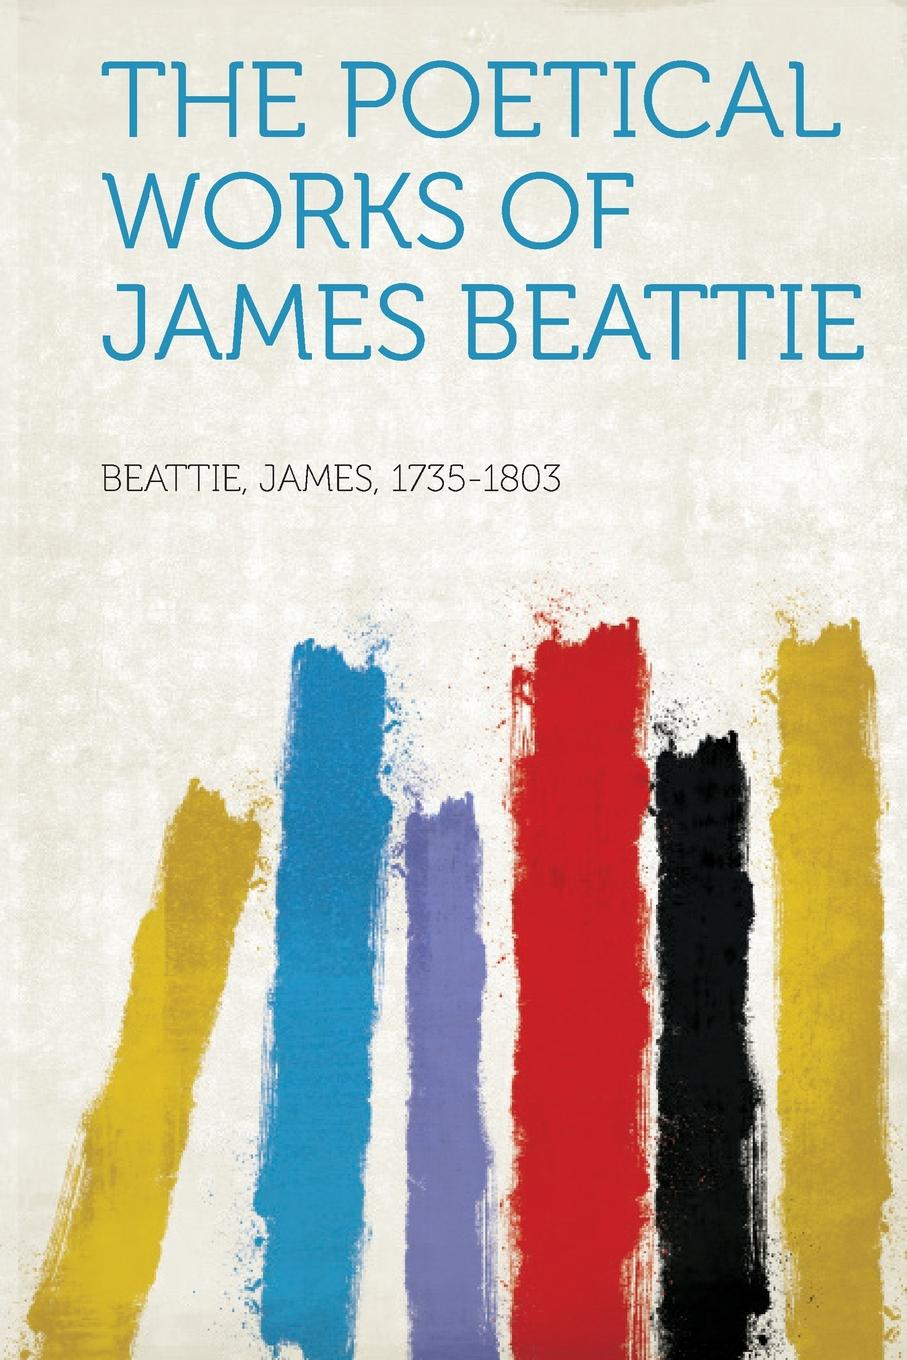 Beattie James 1735-1803 The Poetical Works of James Beattie james beattie the poetical works of james beattie